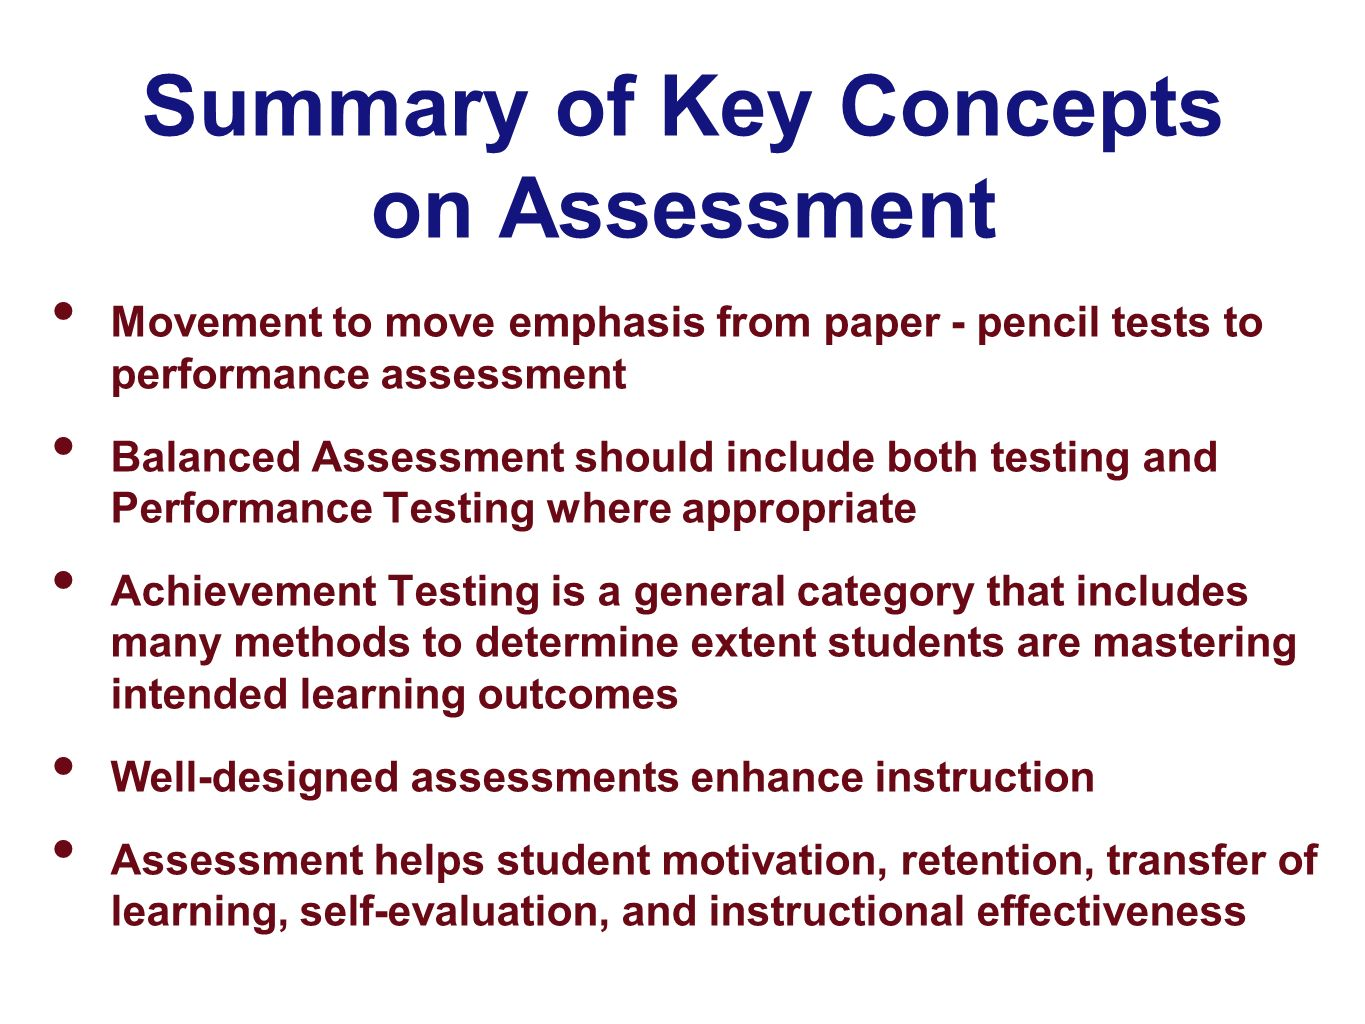 the key concepts in engagement and assessment Engagement and assessment in generalist practice learn with flashcards, games, and more — for free  log in sign up log in sign up 68 terms wuckyduck generalist social work practice ch 5 this is the beginning of chp 5 on pp 146 engagement and assessment in generalist practice  this is an important concept in the assessment.